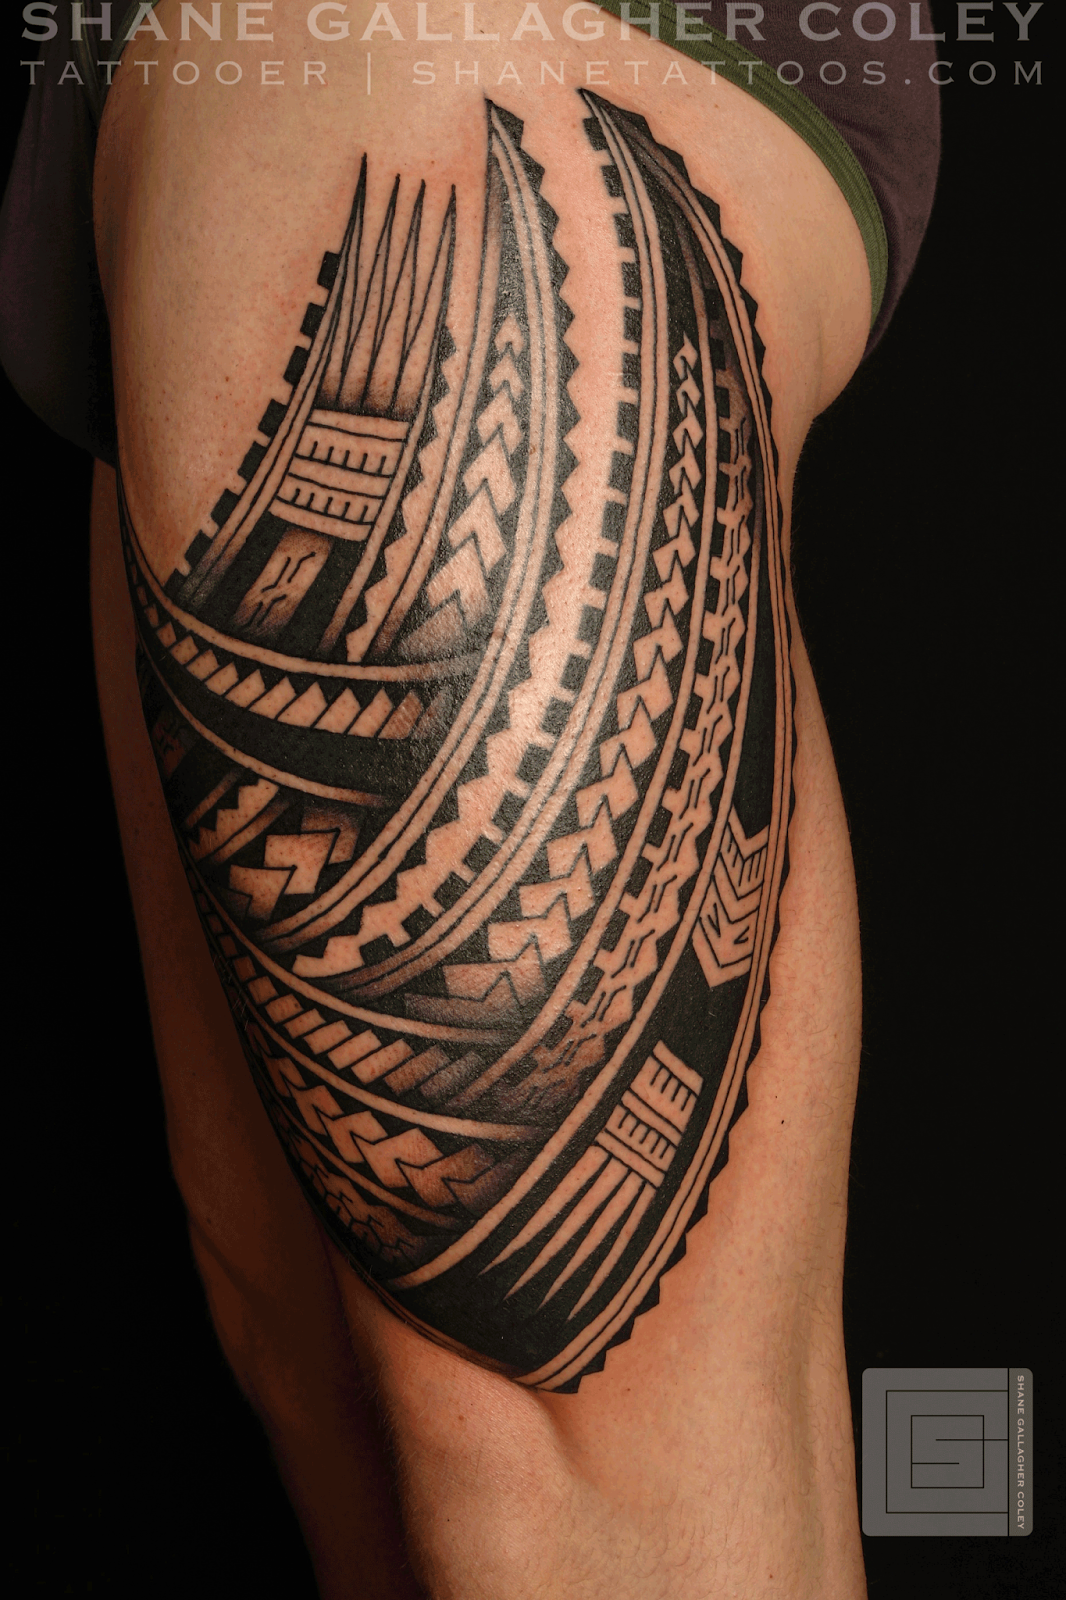 shane tattoos polynesian thigh tatau tattoo ForPolynesian Thigh Tattoo